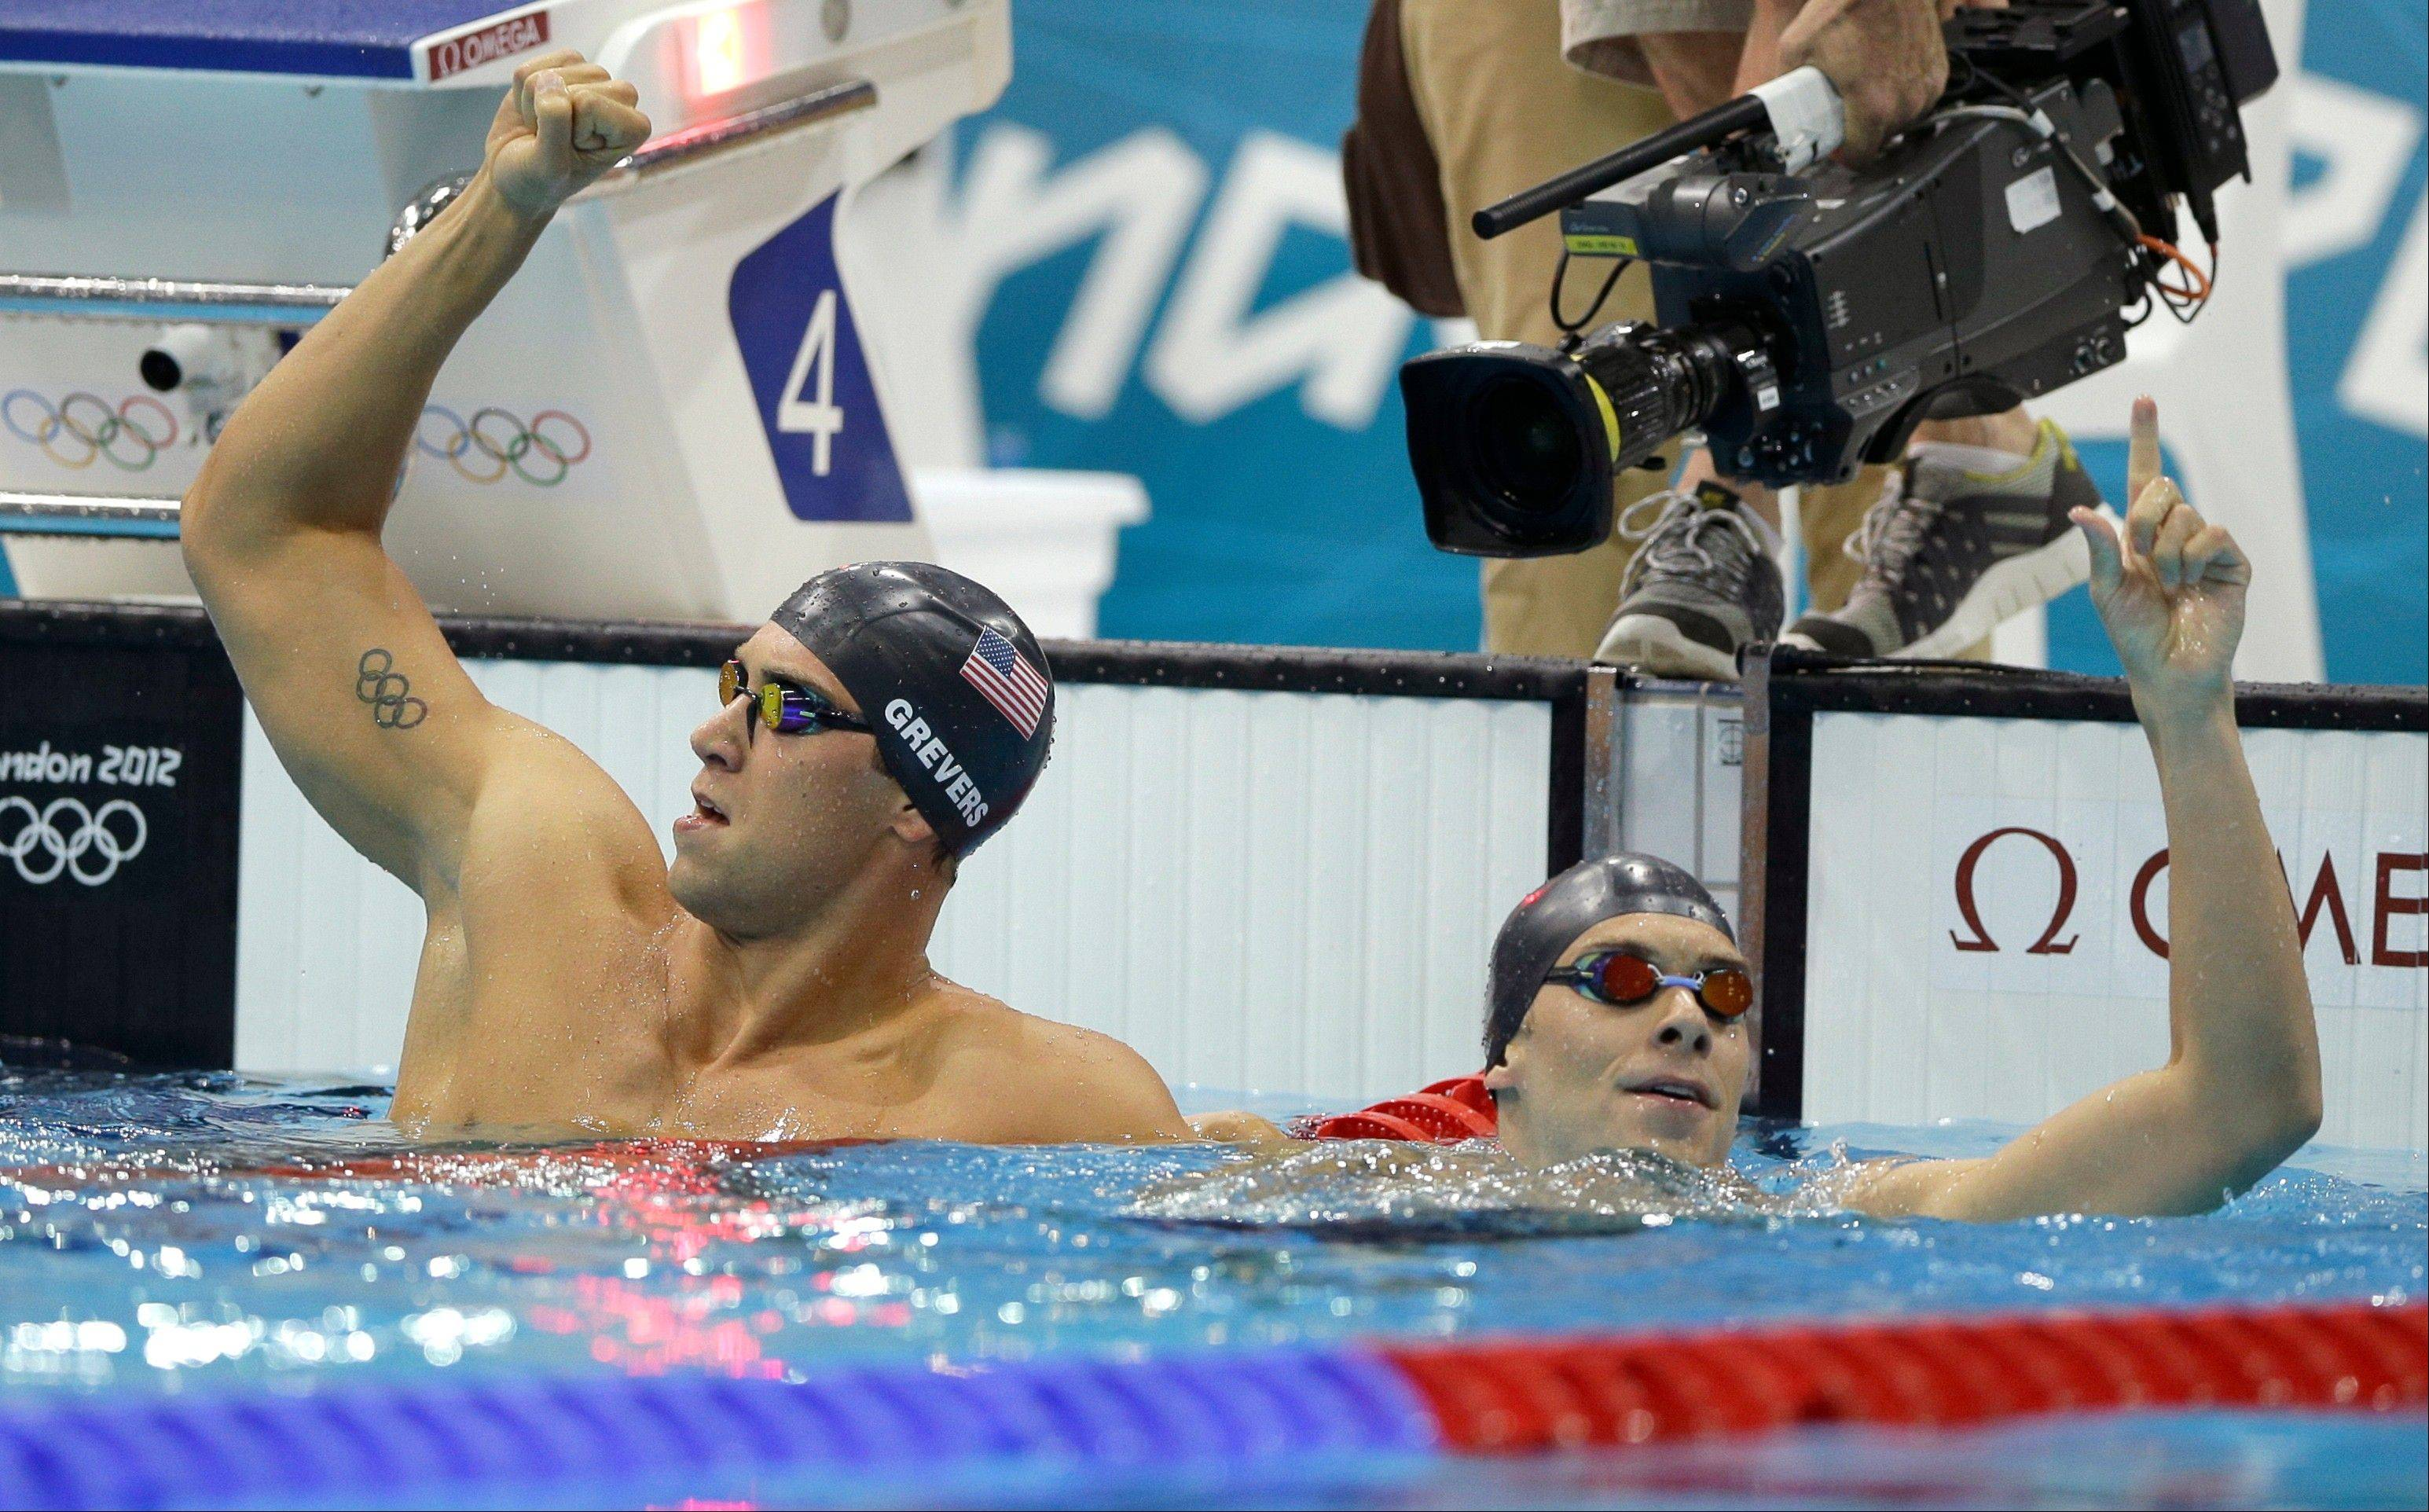 United States' Matthew Grevers, left, and teammate Nick Thoman celebrate after Grevers' gold medal win in the men's 100-meter backstroke swimming final at the Aquatics Centre in the Olympic Park during the 2012 Summer Olympics in London, Monday, July 30, 2012.